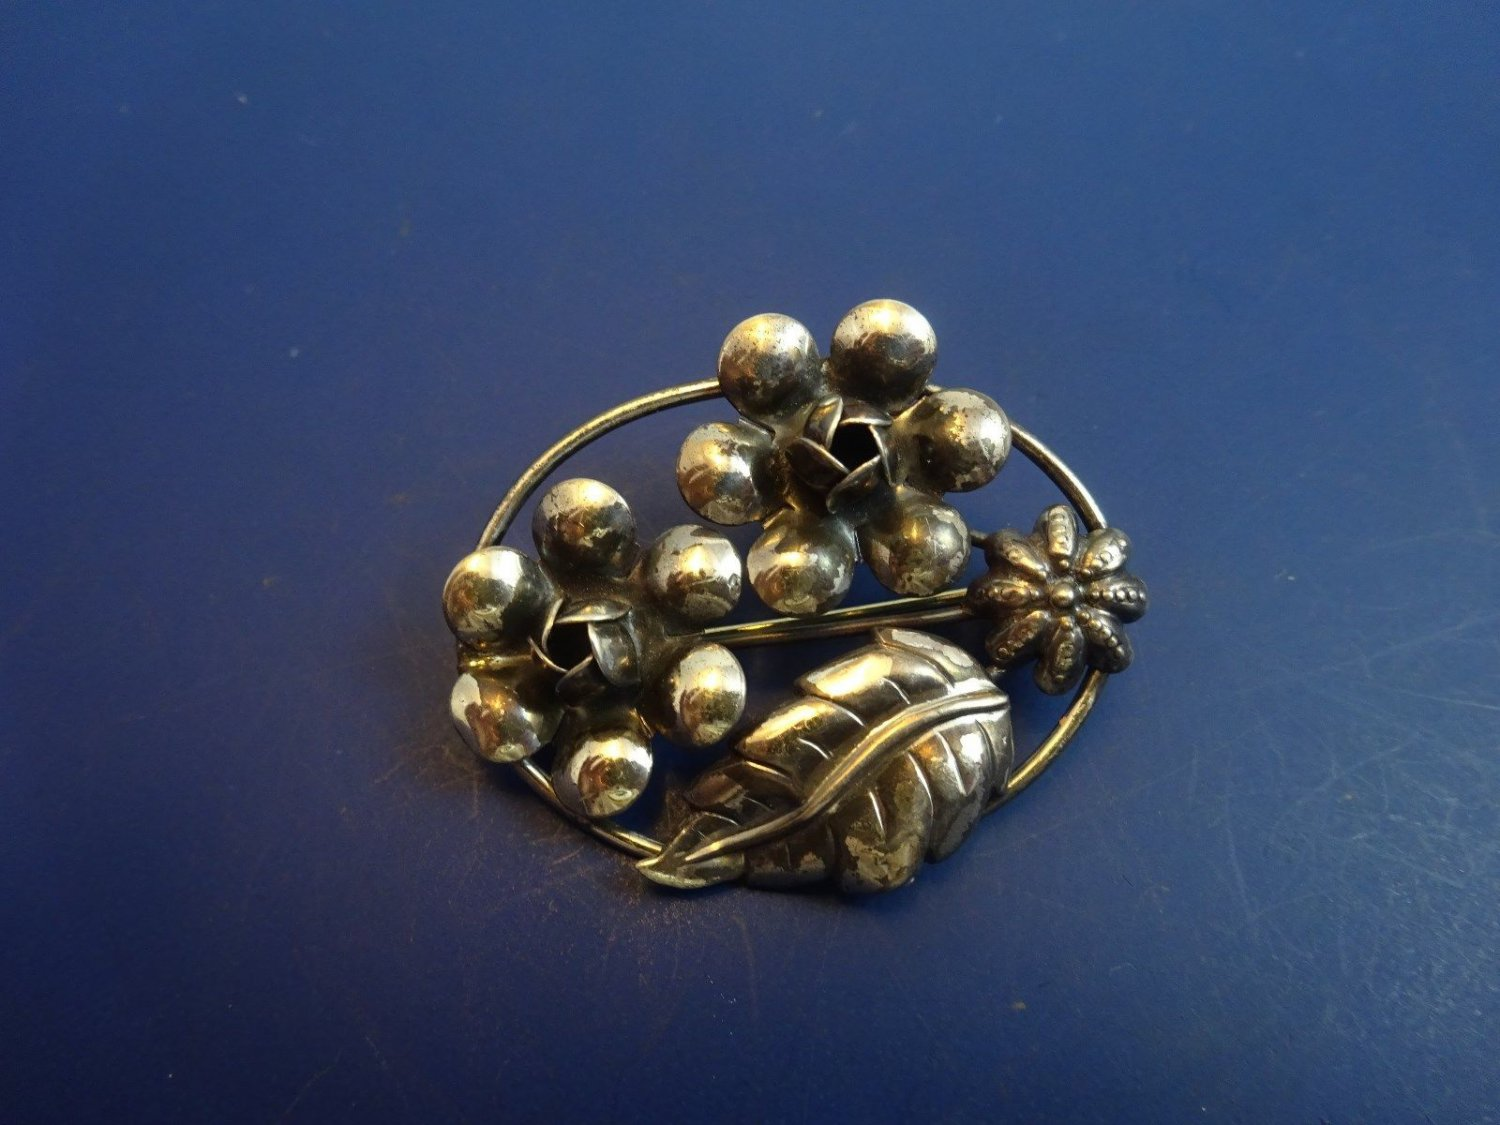 Sterling Silver Pin with Floral Design in Oval Shape by Lang (1125)